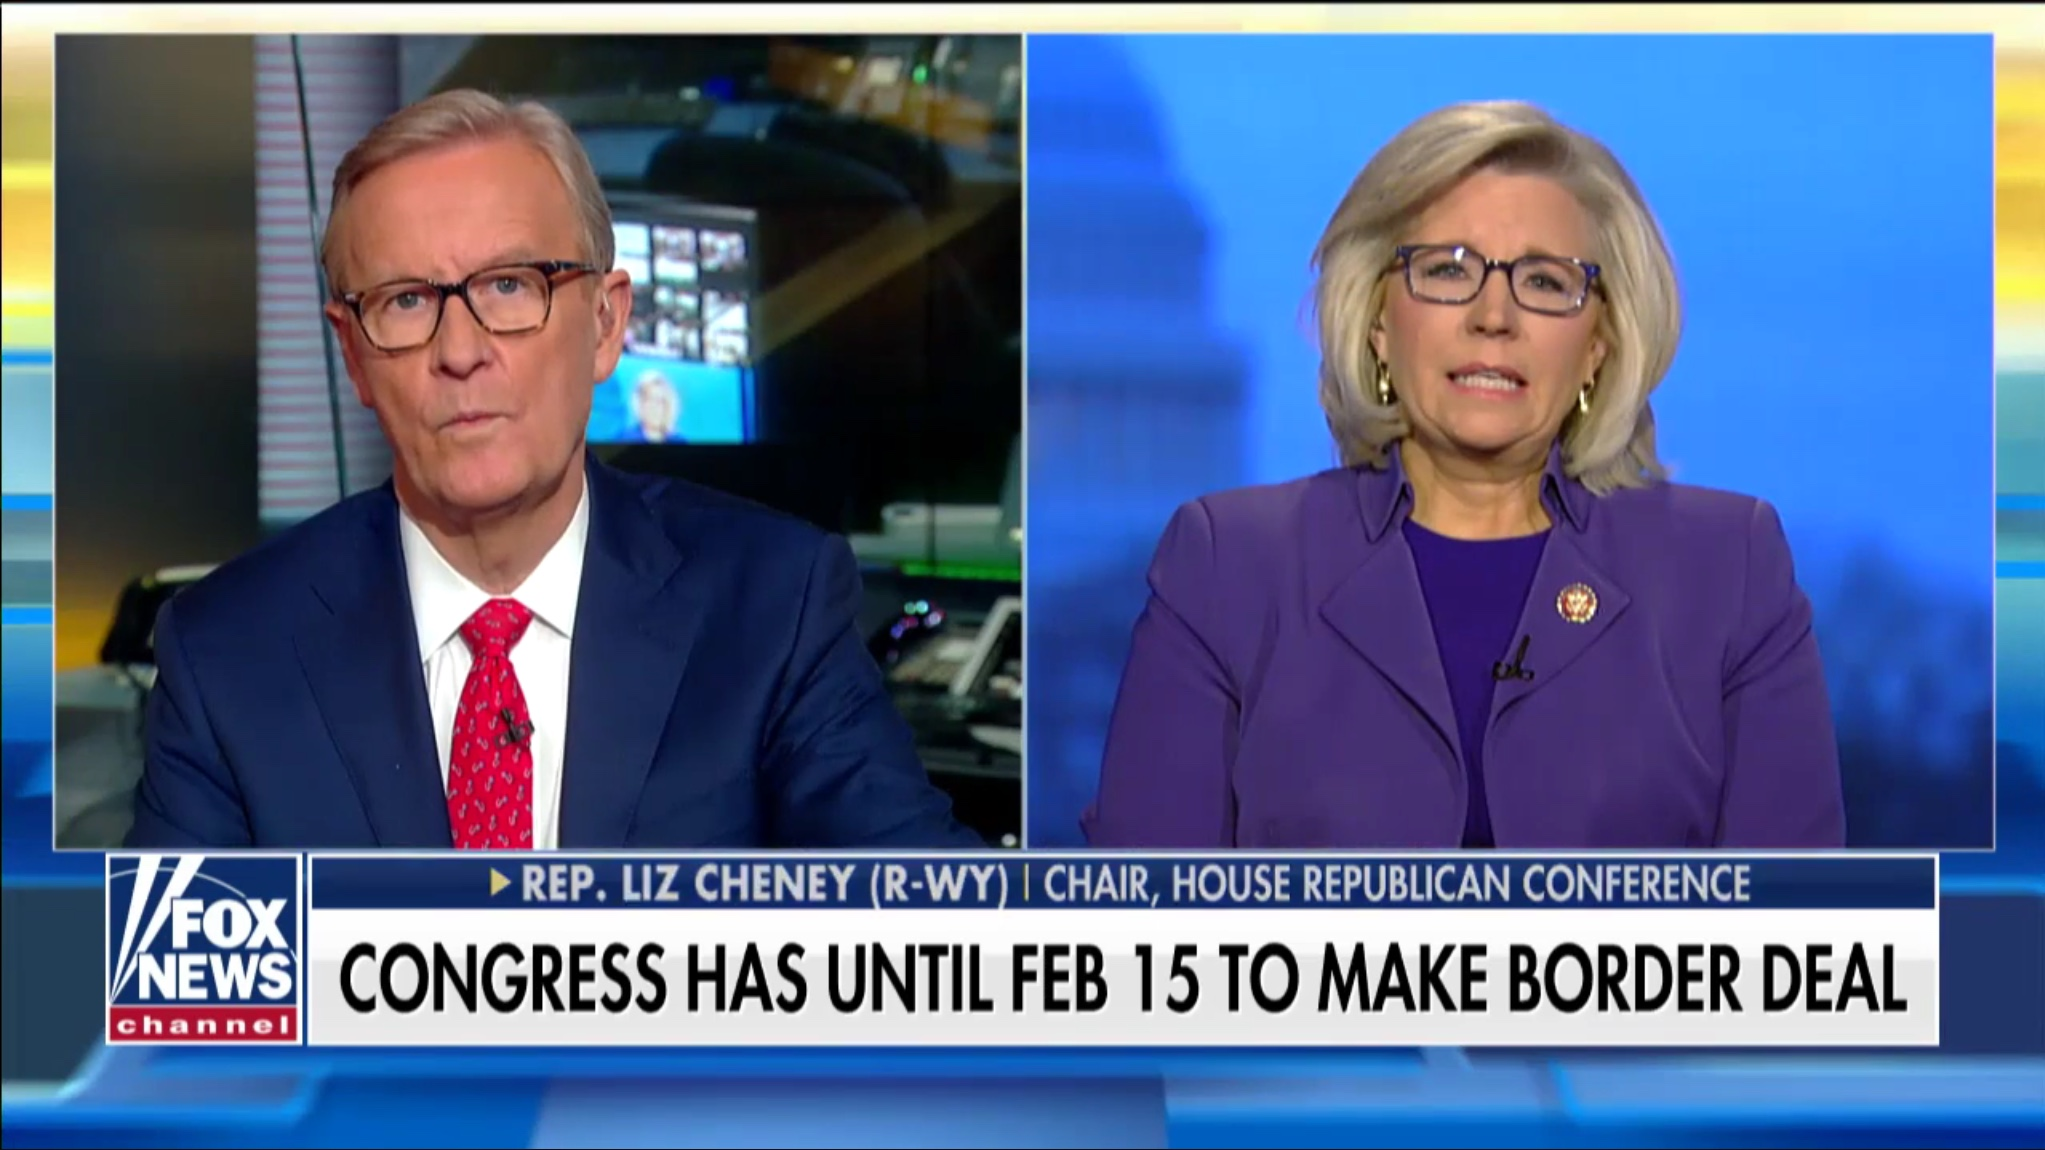 Wyoming Republican Rep. Liz Cheney talks to 'Fox & Friends' about the government shutdown and the border wall, Jan. 28, 2019. Fox News screenshot.